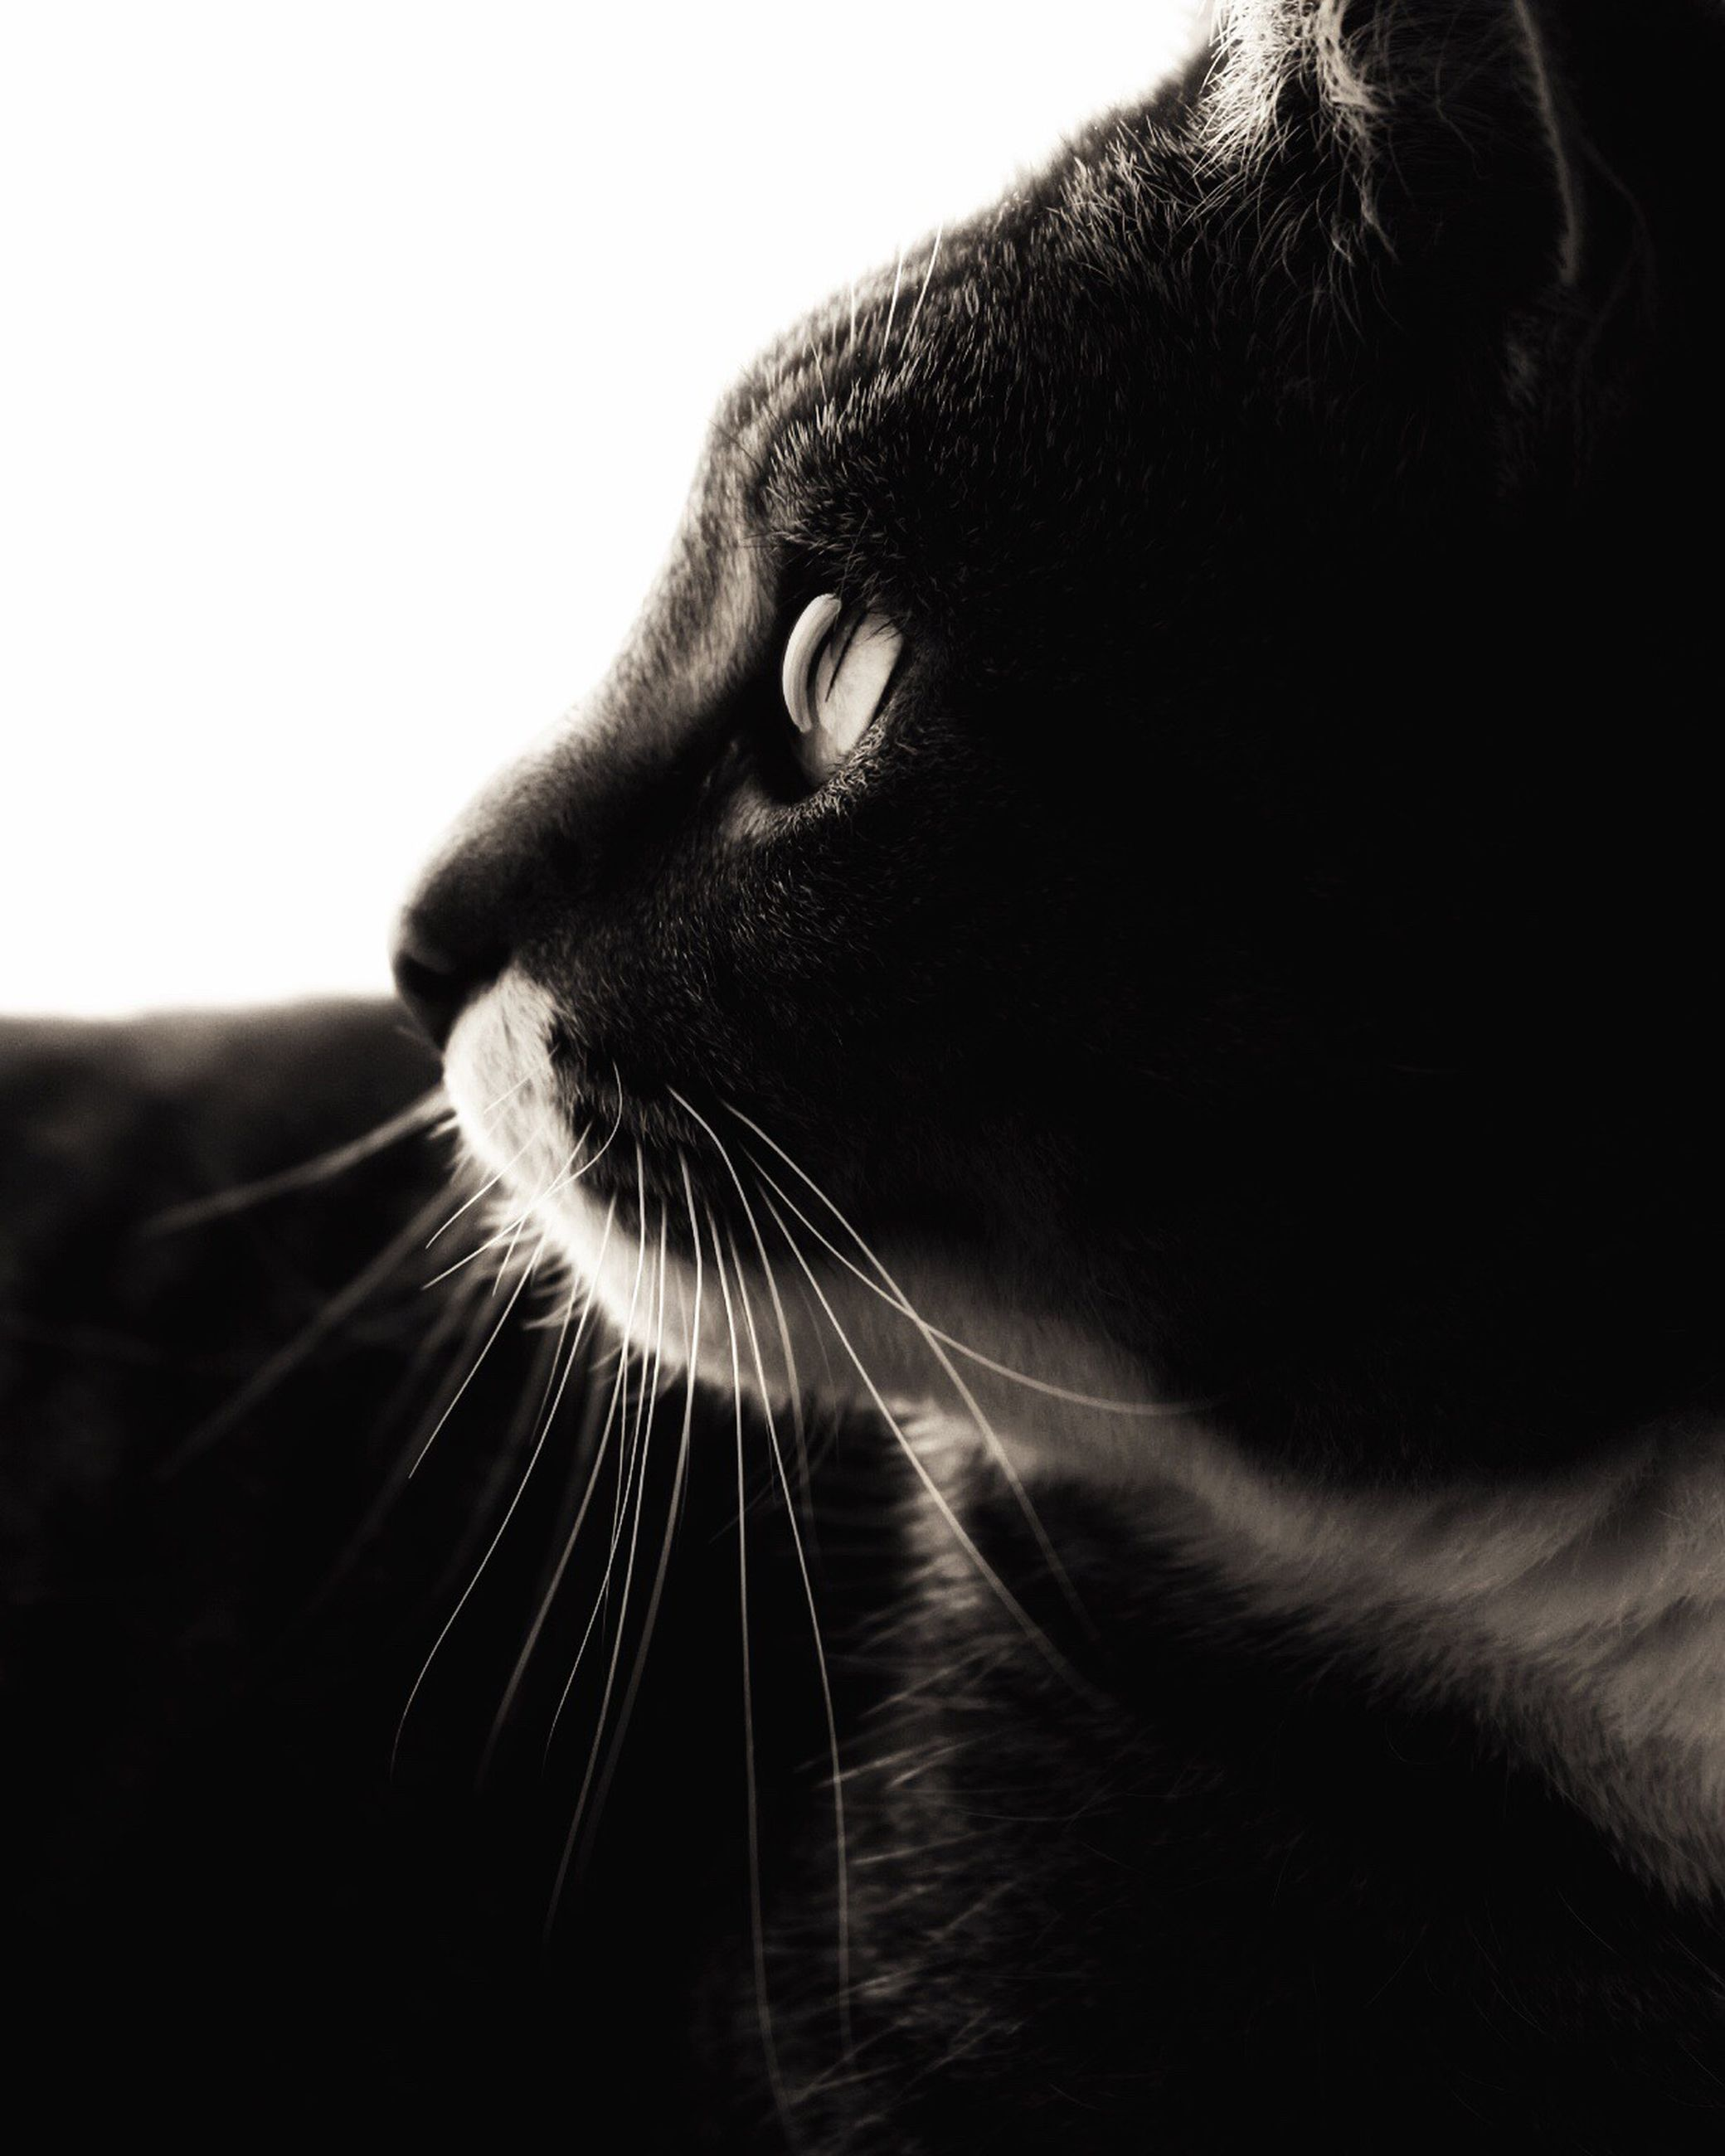 domestic cat, one animal, animal themes, domestic animals, feline, close-up, pets, whisker, mammal, cat, animal head, no people, indoors, day, nature